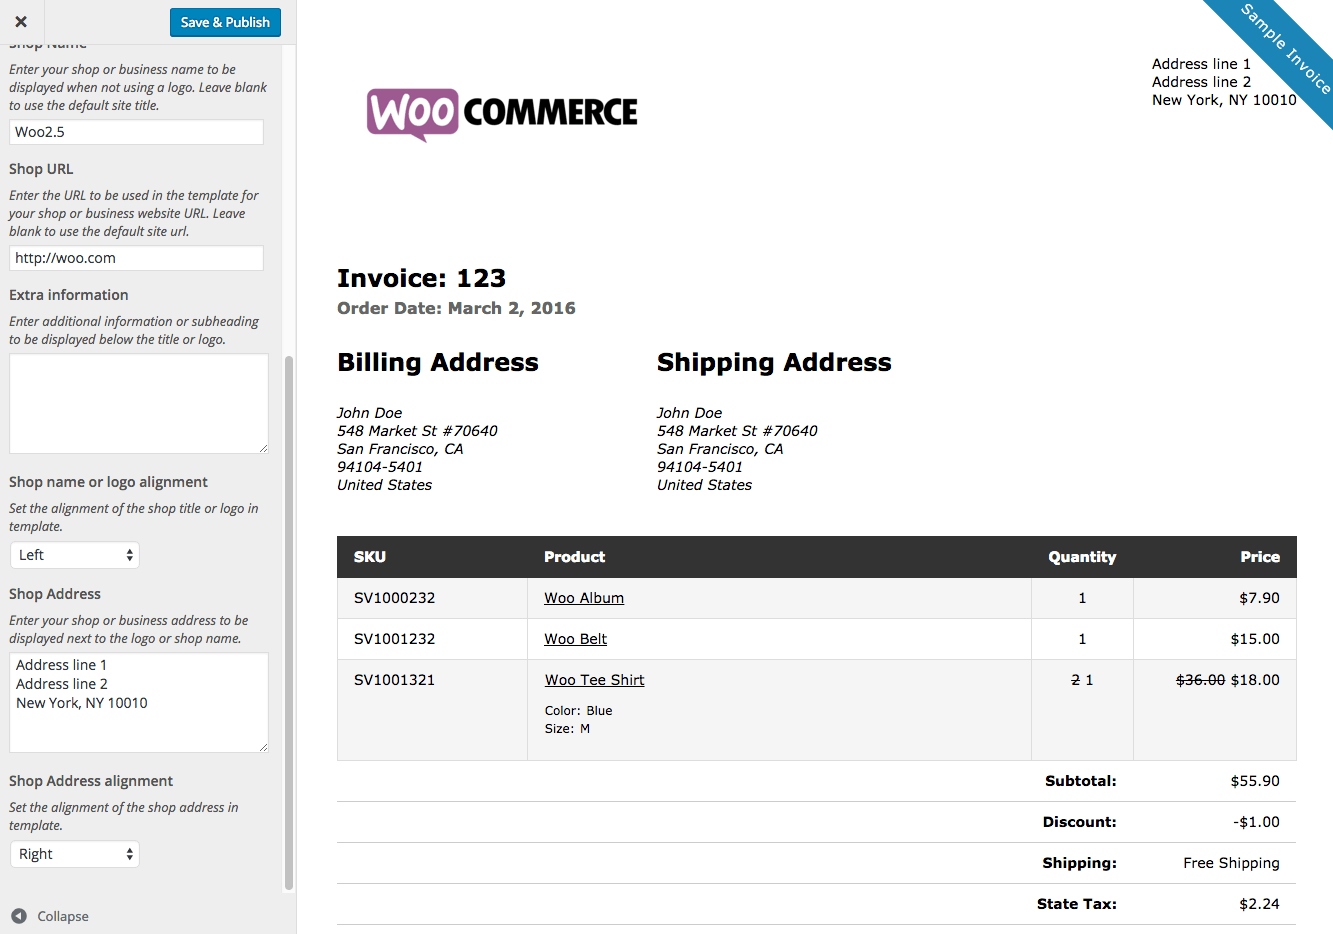 Shopdesignsus  Marvellous Print Invoices Amp Packing Lists  Woocommerce With Great Woocommerce Print Invoices  Packing Lists Customizer With Amusing Kohls No Receipt Also Provisional Receipt Number In Addition To Confirm The Receipt And Property Payment Receipt Format As Well As Municipal Gross Receipts Surcharge Additionally Receipt In Arabic From Woocommercecom With Shopdesignsus  Great Print Invoices Amp Packing Lists  Woocommerce With Amusing Woocommerce Print Invoices  Packing Lists Customizer And Marvellous Kohls No Receipt Also Provisional Receipt Number In Addition To Confirm The Receipt From Woocommercecom